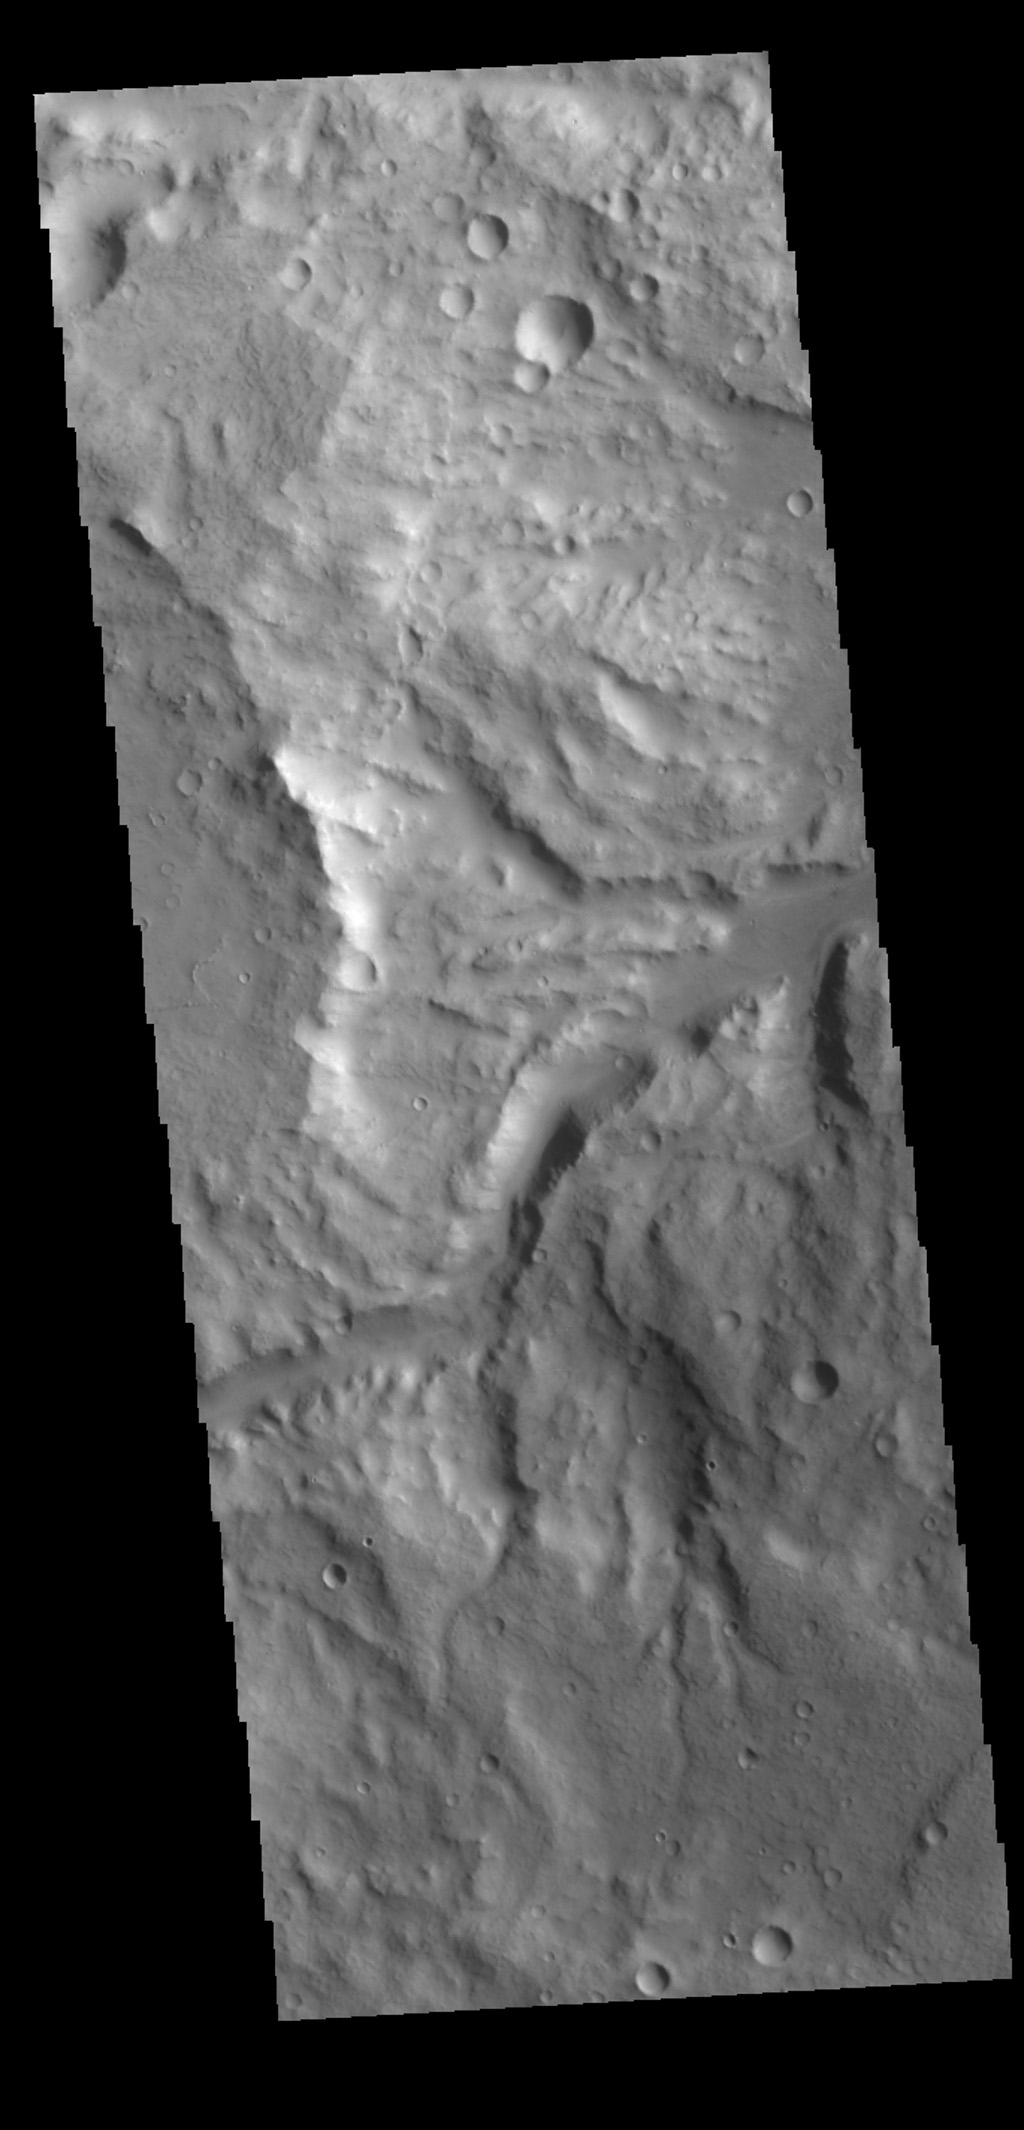 This image captured by NASA's 2001 Mars Odyssey spacecraft shows one of the many unnamed channels in northern Terra Cimmeria.